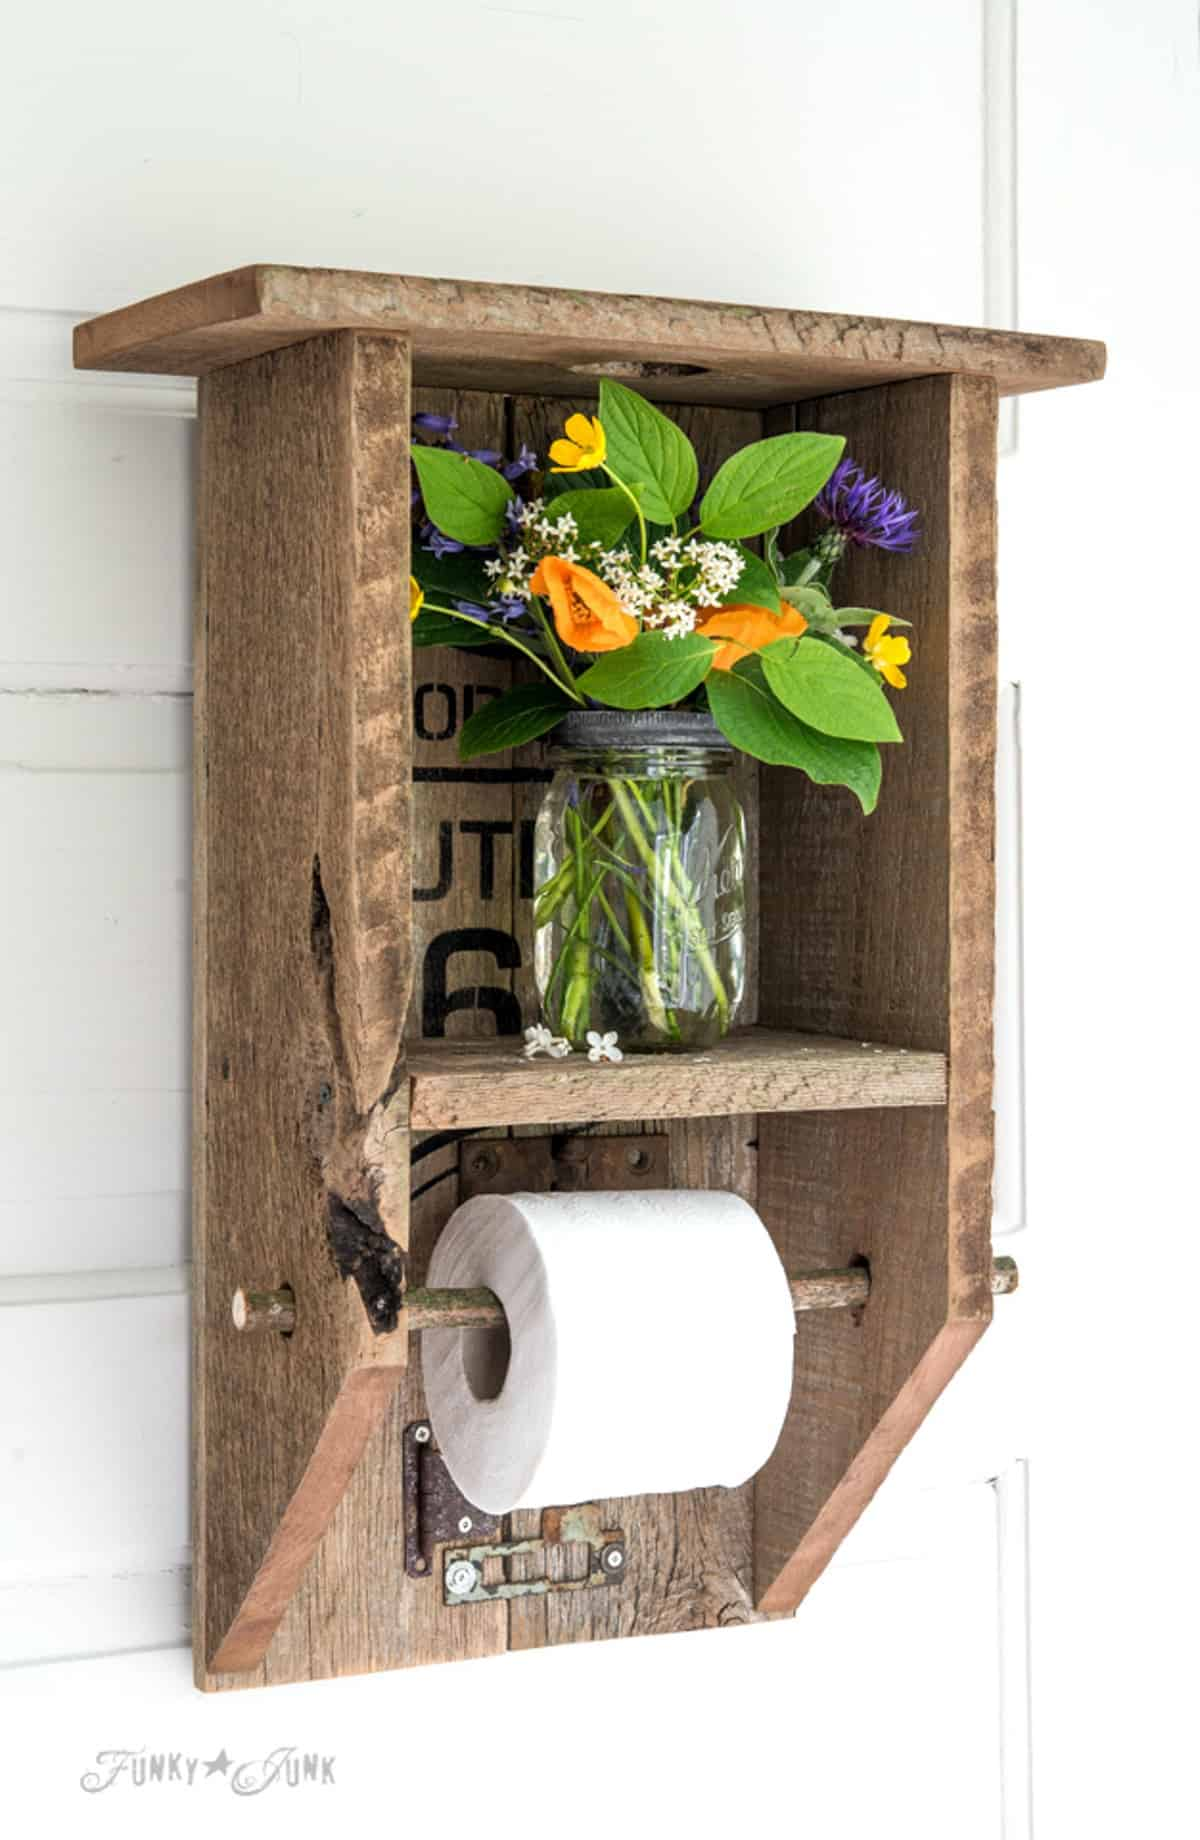 Wooden Toilet Paper Holder with Flowers